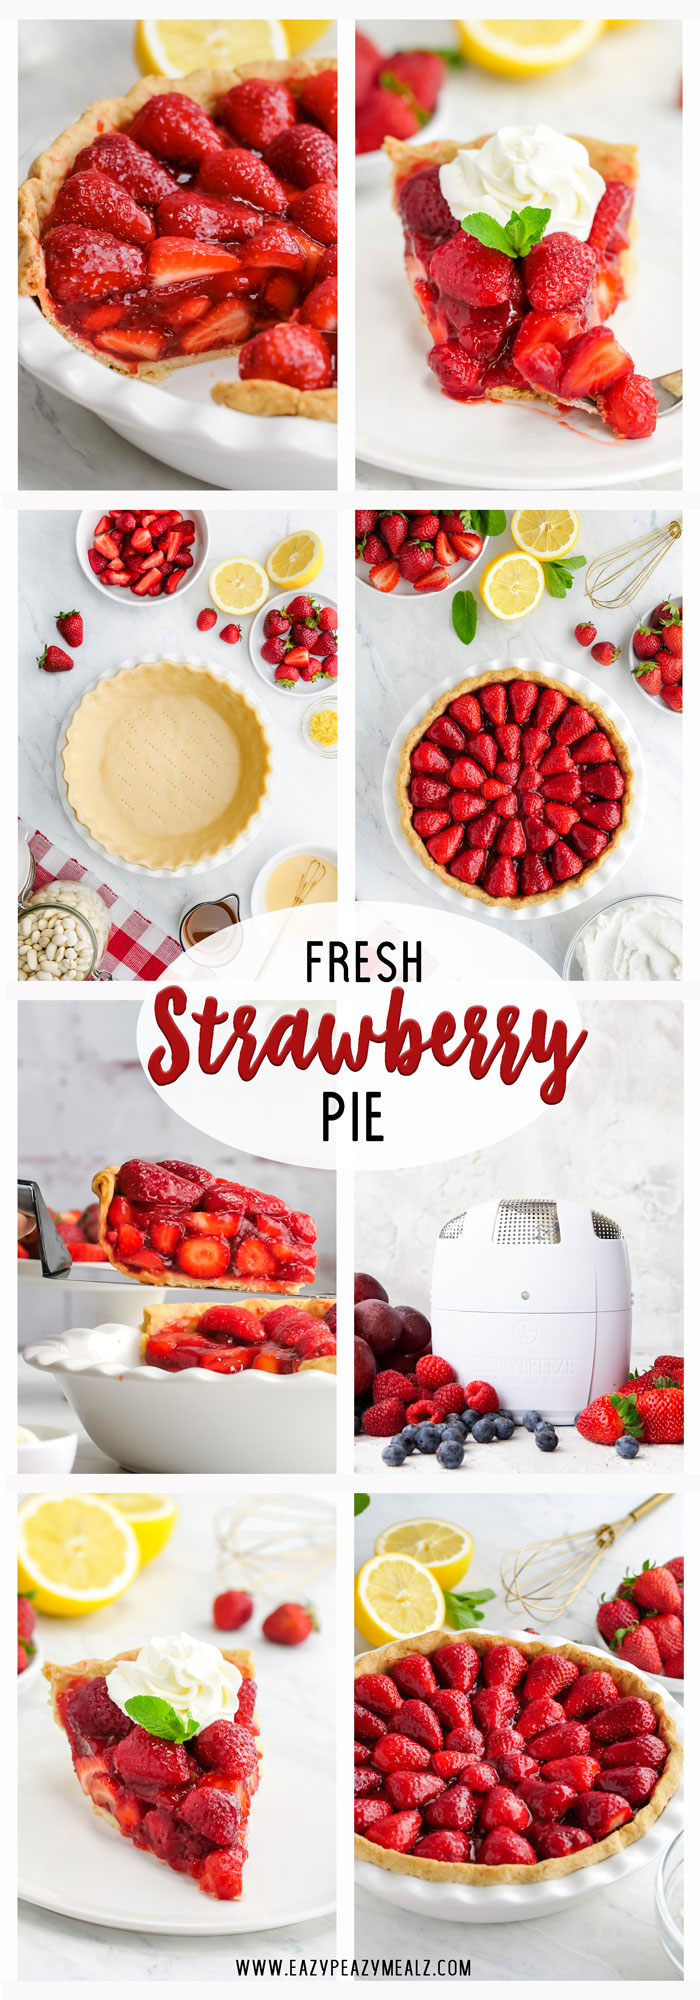 A delicious and easy to make strawberry pie